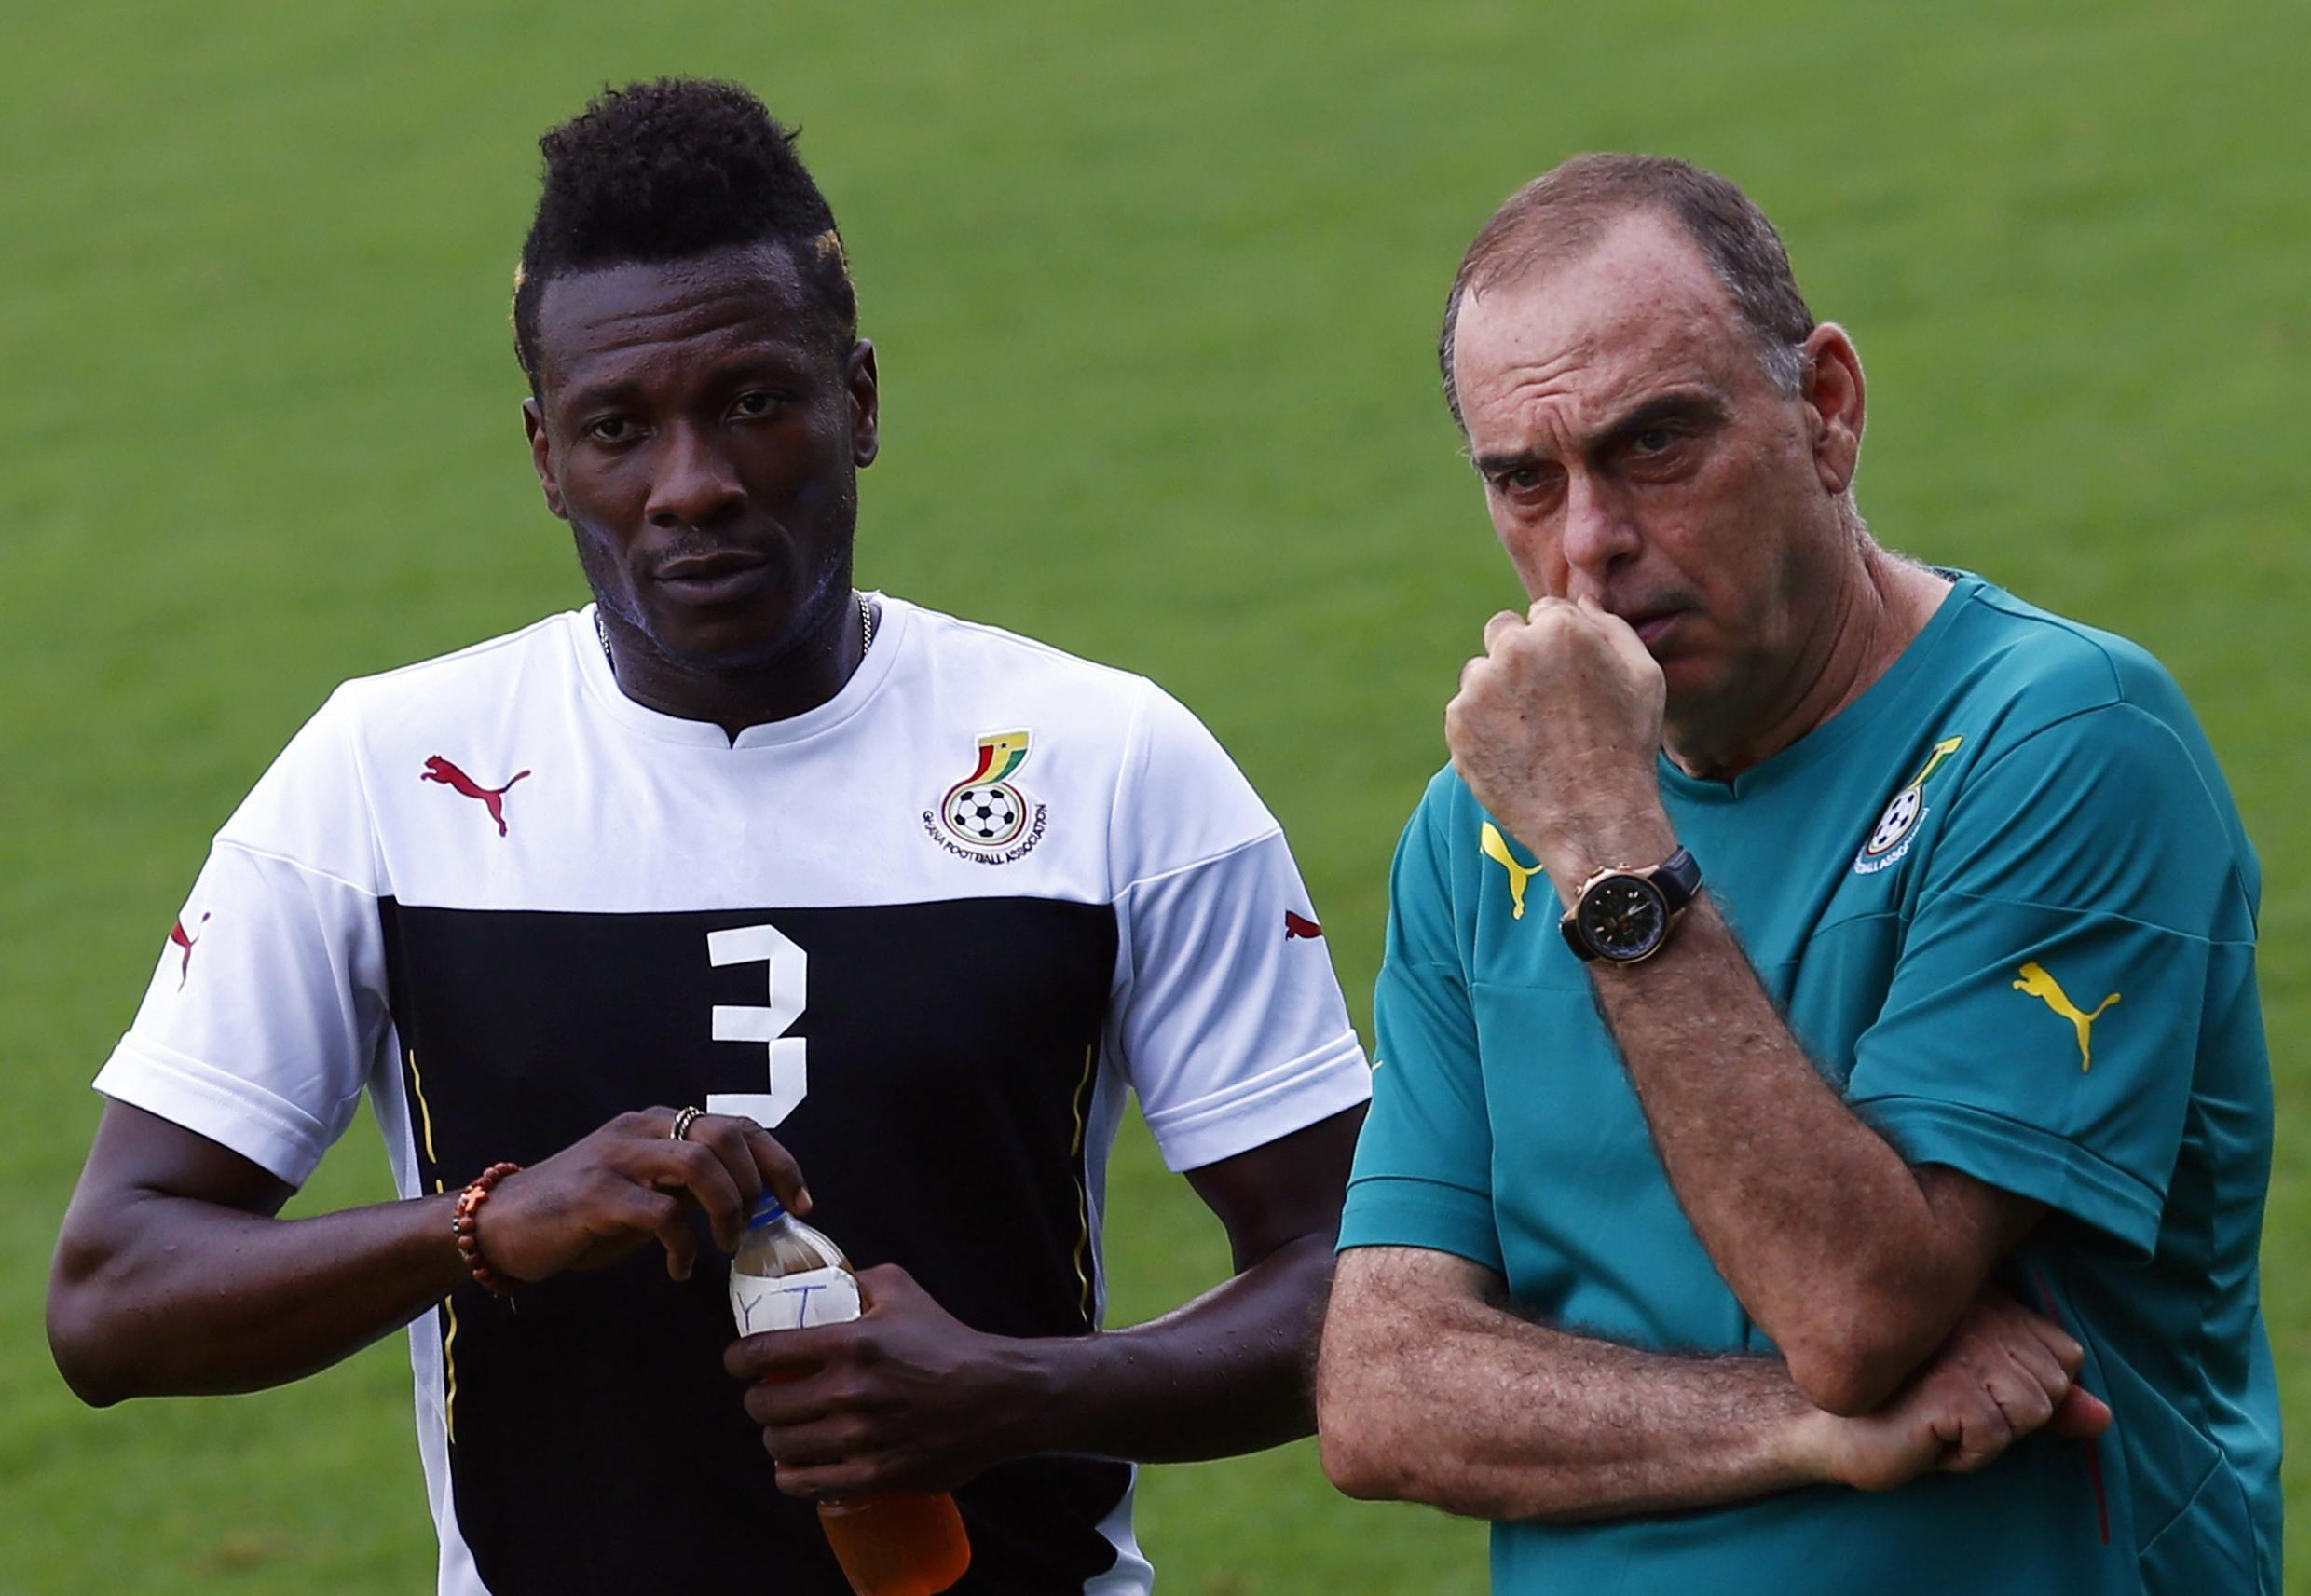 Ghana coach Avram Grant (right) said injuries to key players such as his skipper Asamoah Gyan (left) had derailed Ghana's quest for a fifth Cup of Nations trophy.